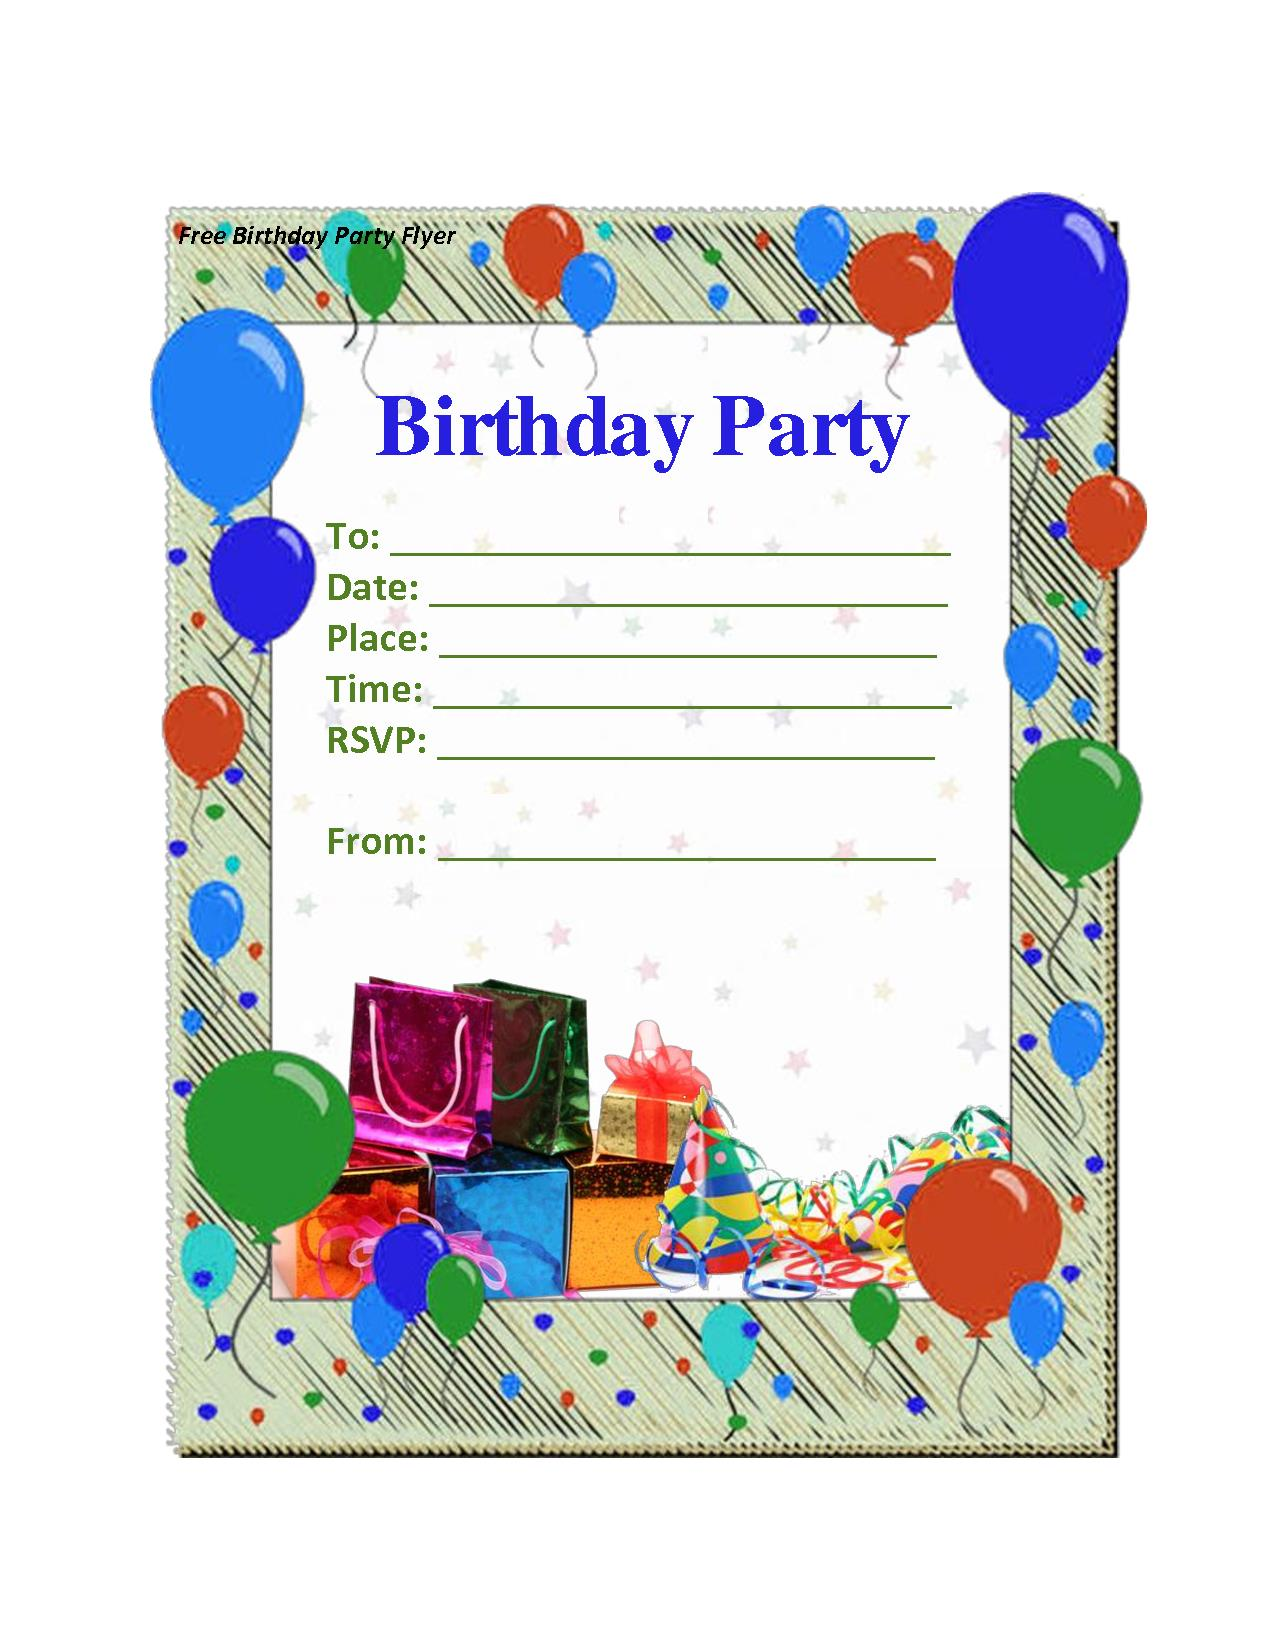 latest birthday invitation card designs ; Example-Of-Choice-Free-Birthday-Invitations-Ballon-Theme-White-Background-With-An-Interesting-Design-For-a-Childs-Cute-Dear